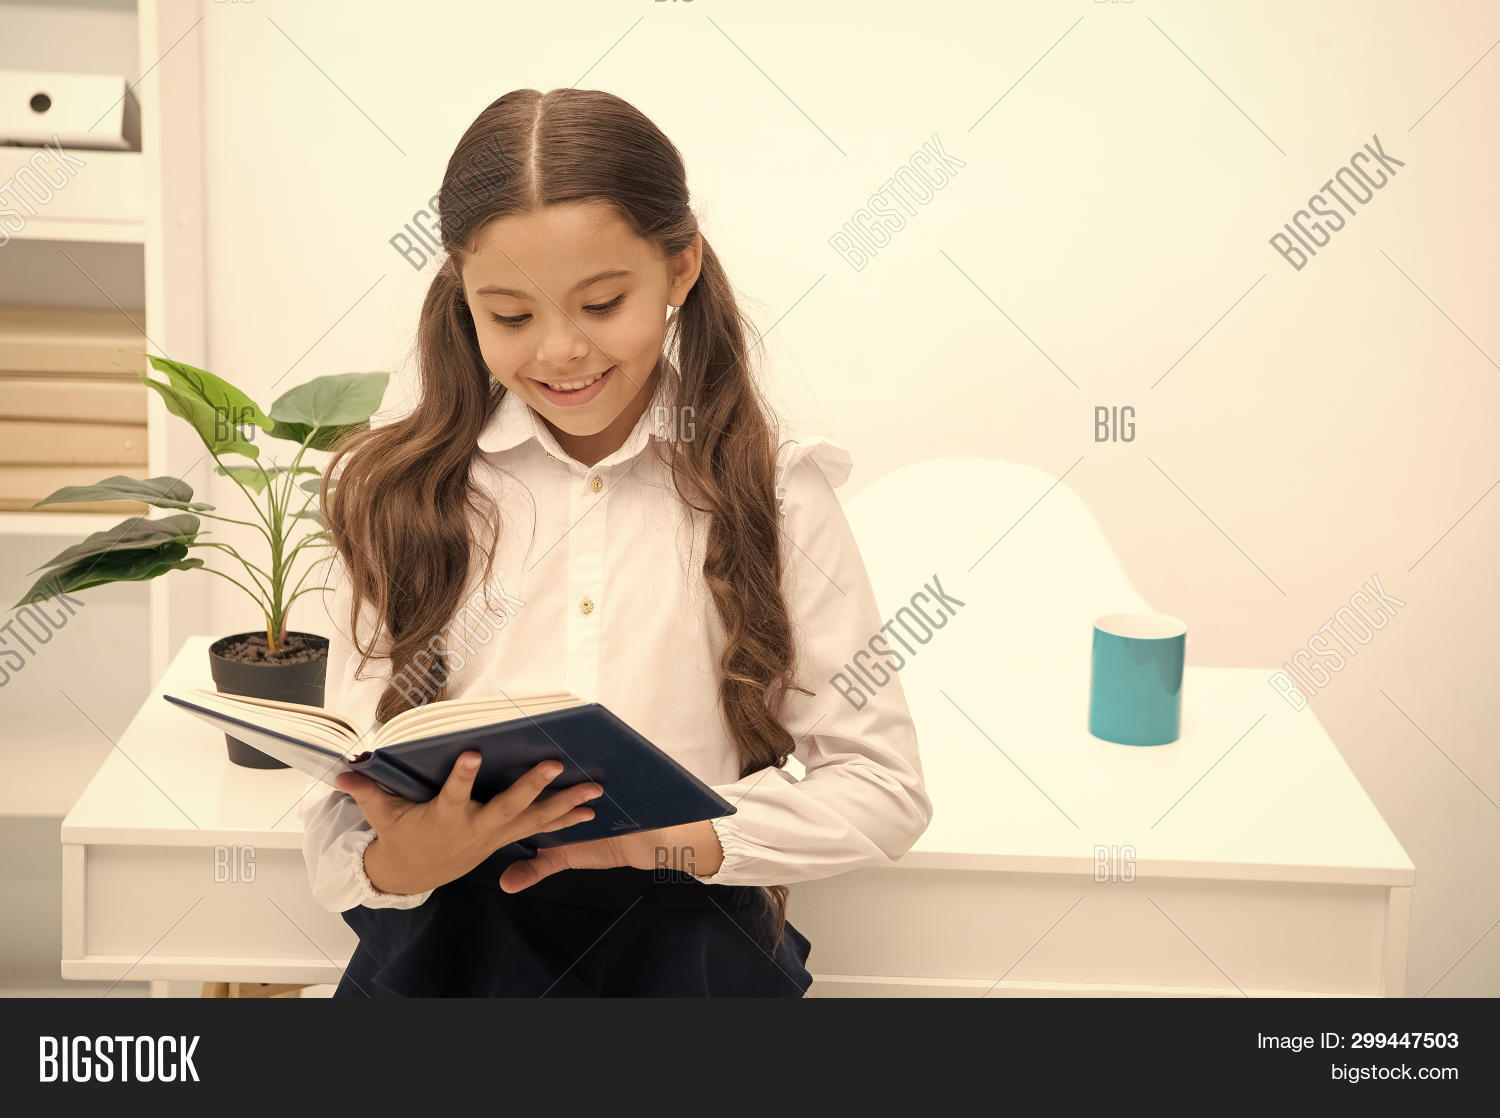 about,adorable,background,book,caucasian,cheerful,child,childhood,cute,diligent,education,excited,face,formal,girl,hairstyle,happy,interesting,interior,kid,knowledge,lesson,little,perfect,pupil,read,school,schoolgirl,sit,small,smart,smile,stand,study,subject,such,table,textbook,tidy,topic,uniform,while,white